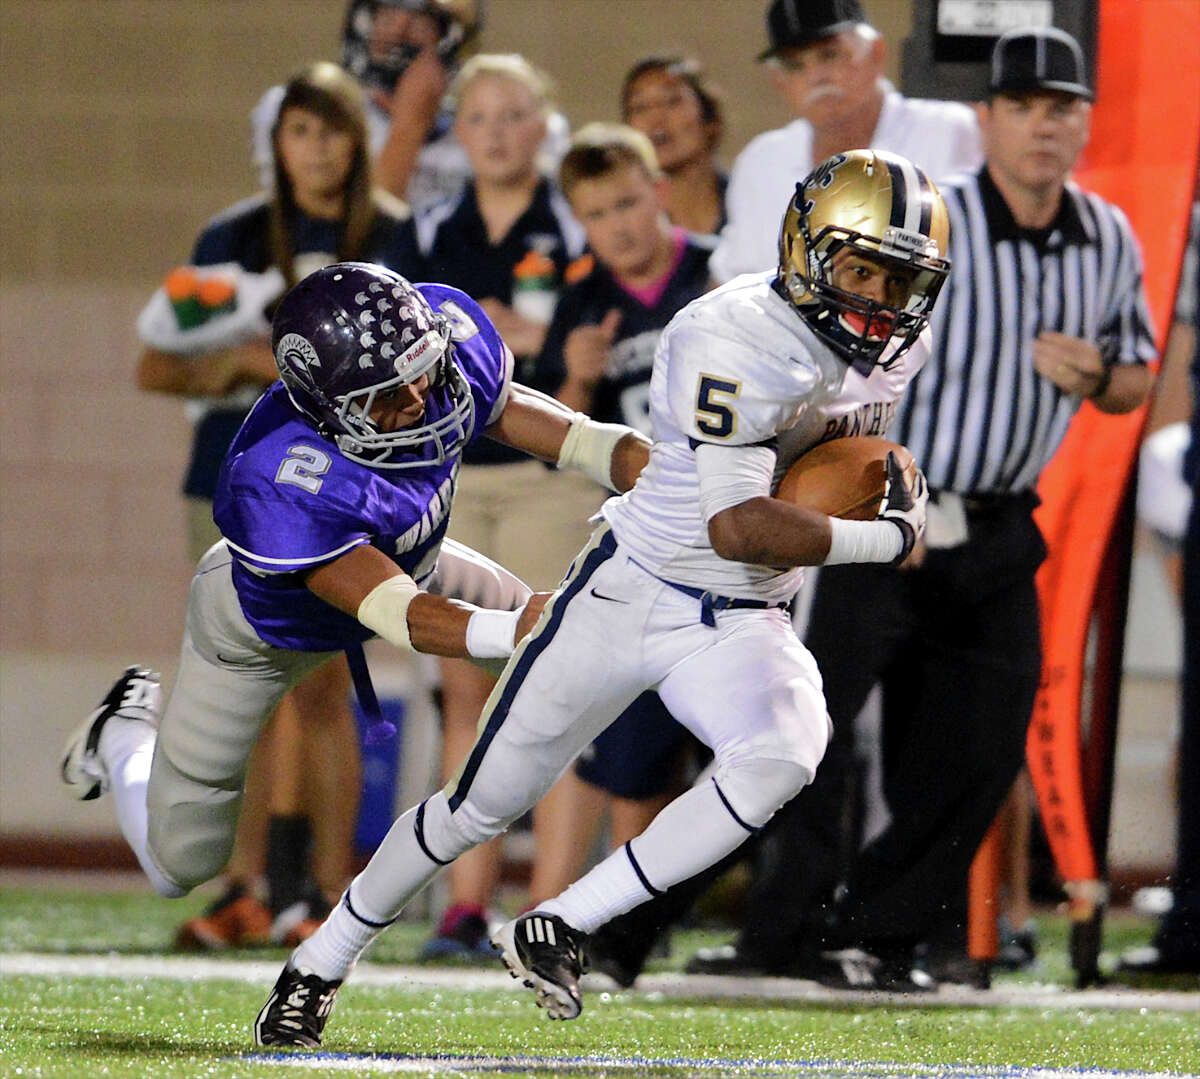 O'Connor's Tre Johnson (5) sprints past Warren's Demonte Butler (2) during a district football game between the Warren Warriors and the o'Connor Panthers at Farris Stadium in San Antonio, Saturday, October 19, 2012. John Albright / Special to the Express-News.